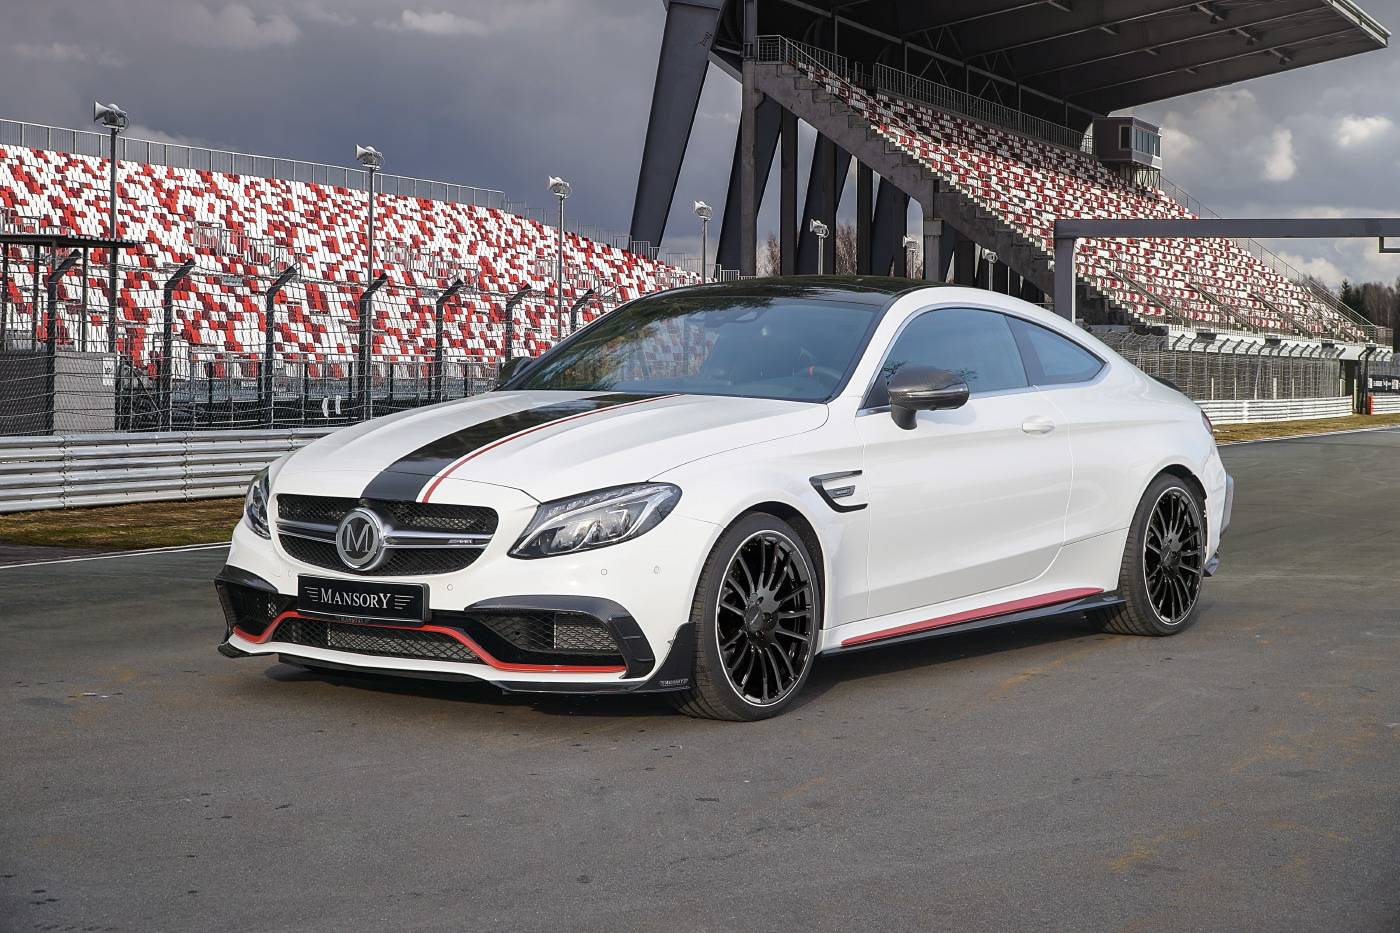 Mansory Upgrades 2019 Mercedes Amg C63 With 650hp And New Parts